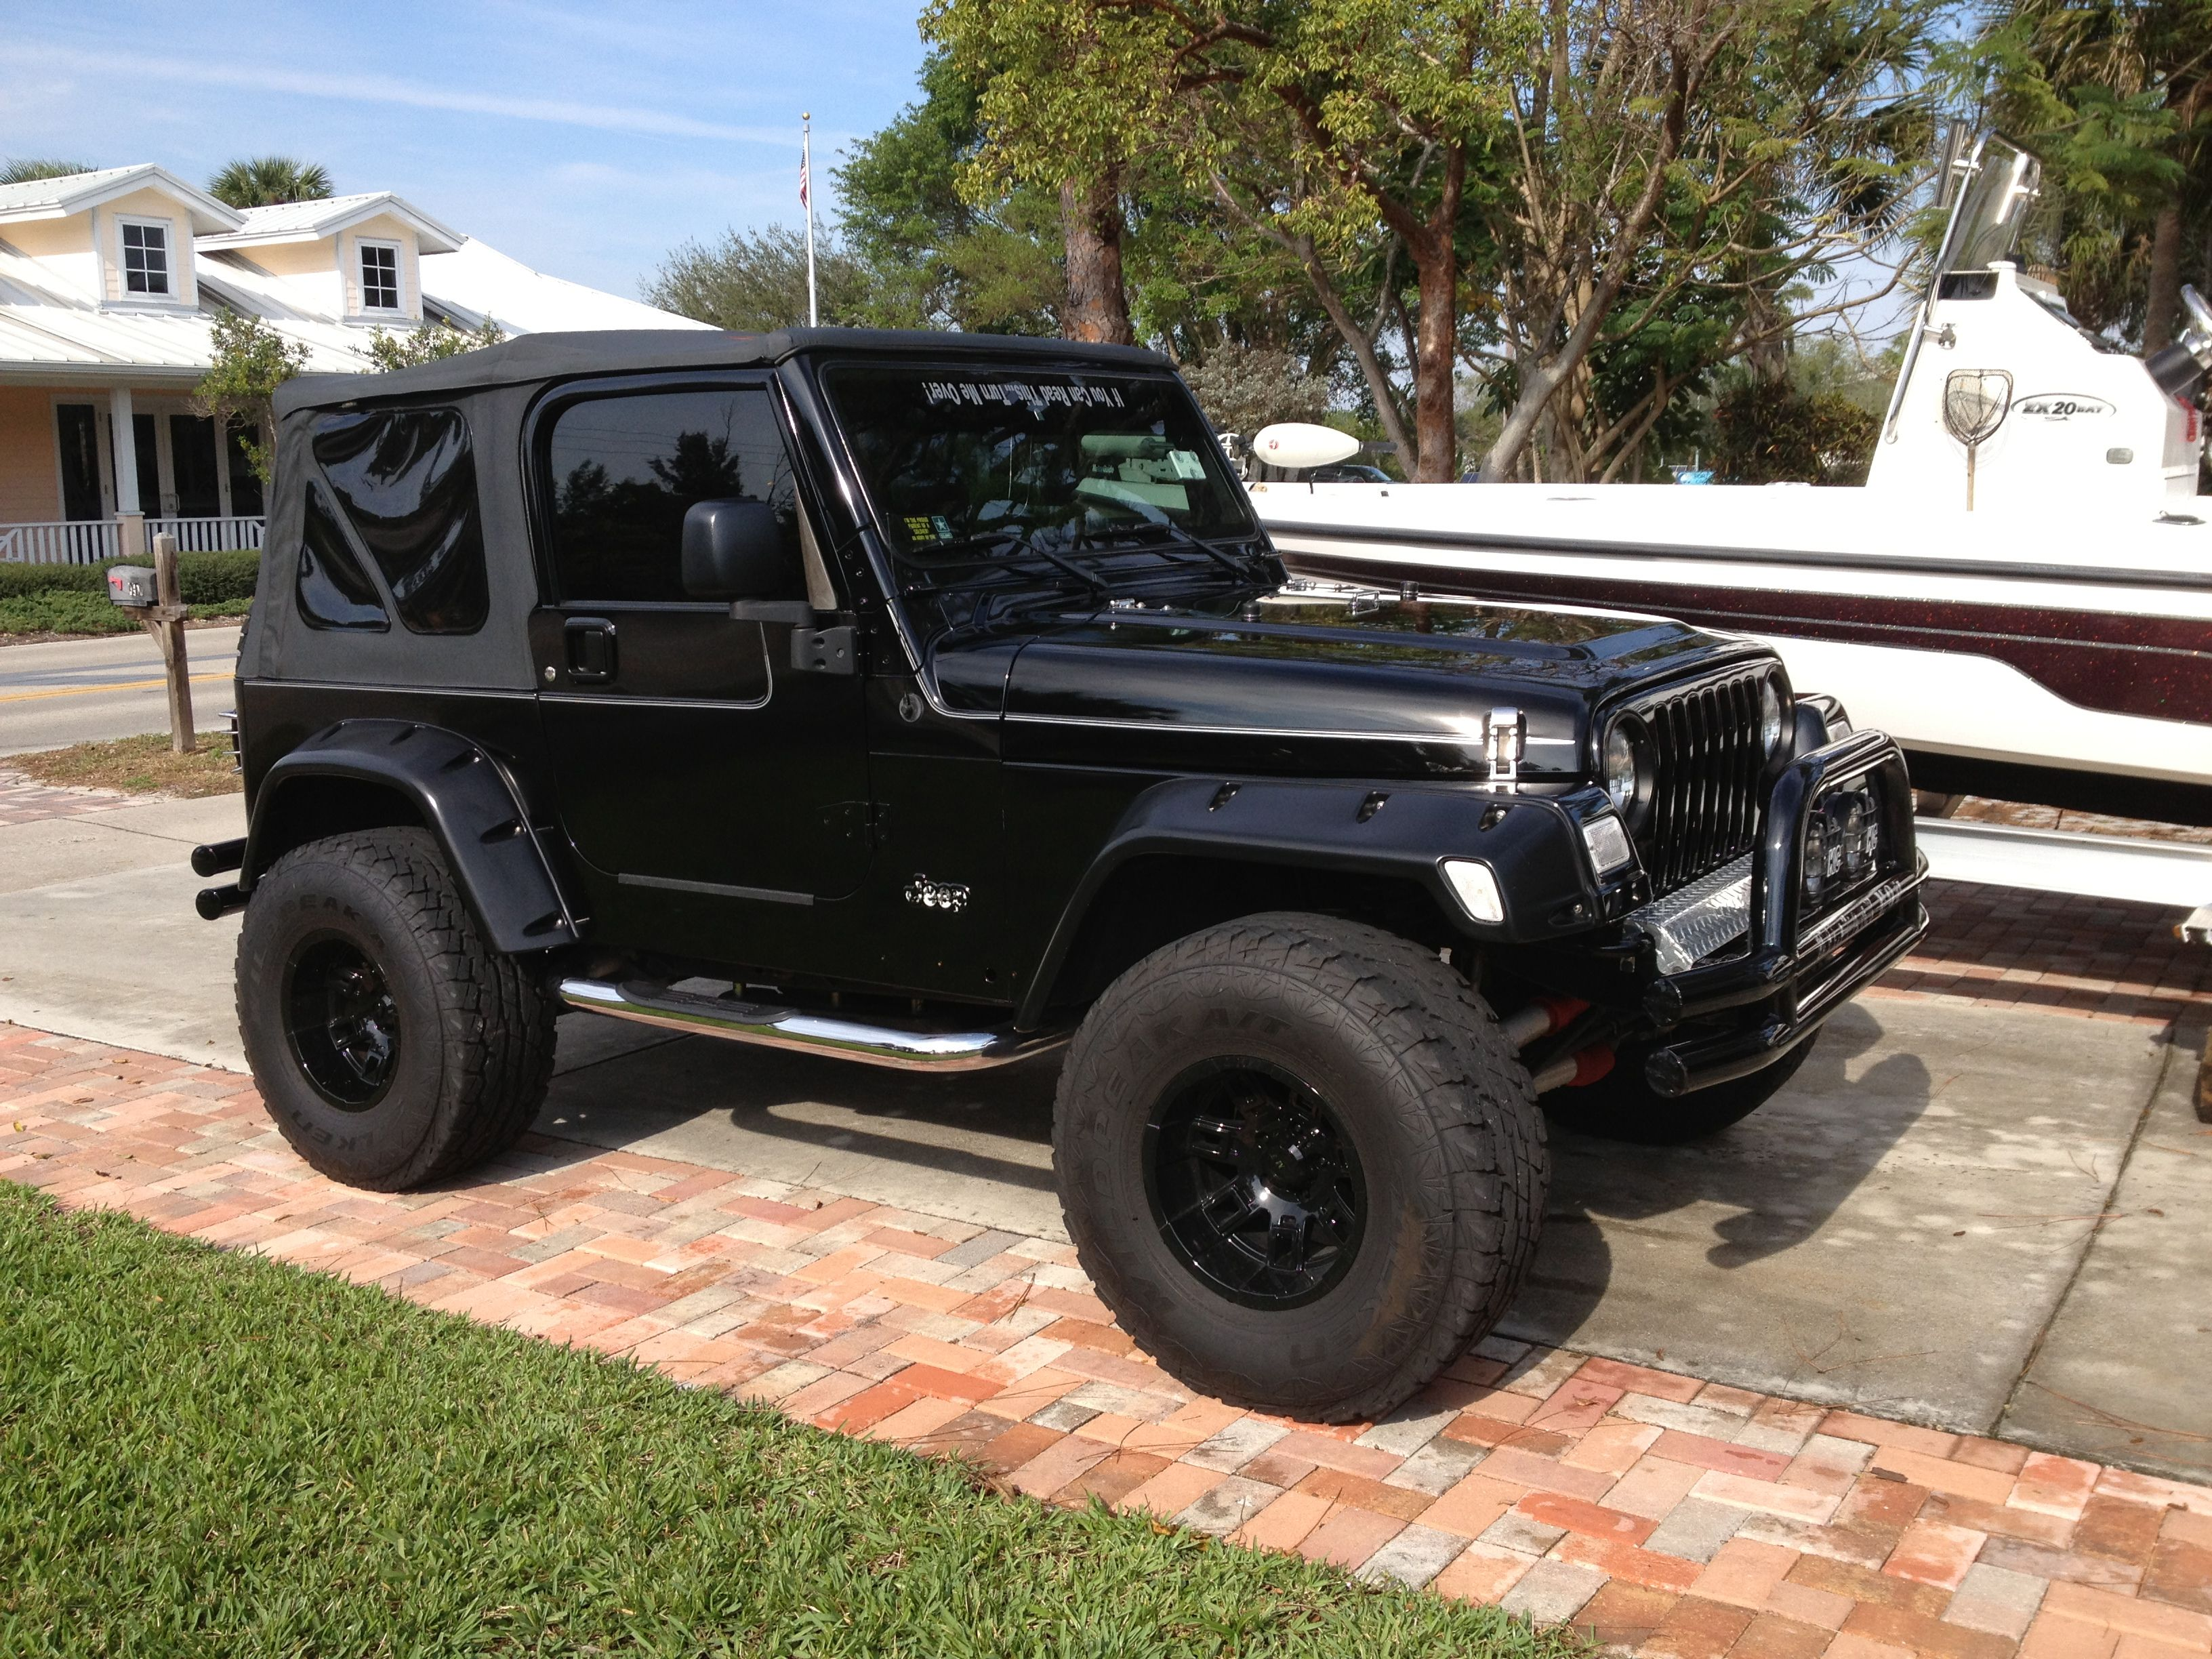 Completely Blacked Out Jeep Wrangler Shod in Off-Road ... |Murdered Out Jeep Wrangler